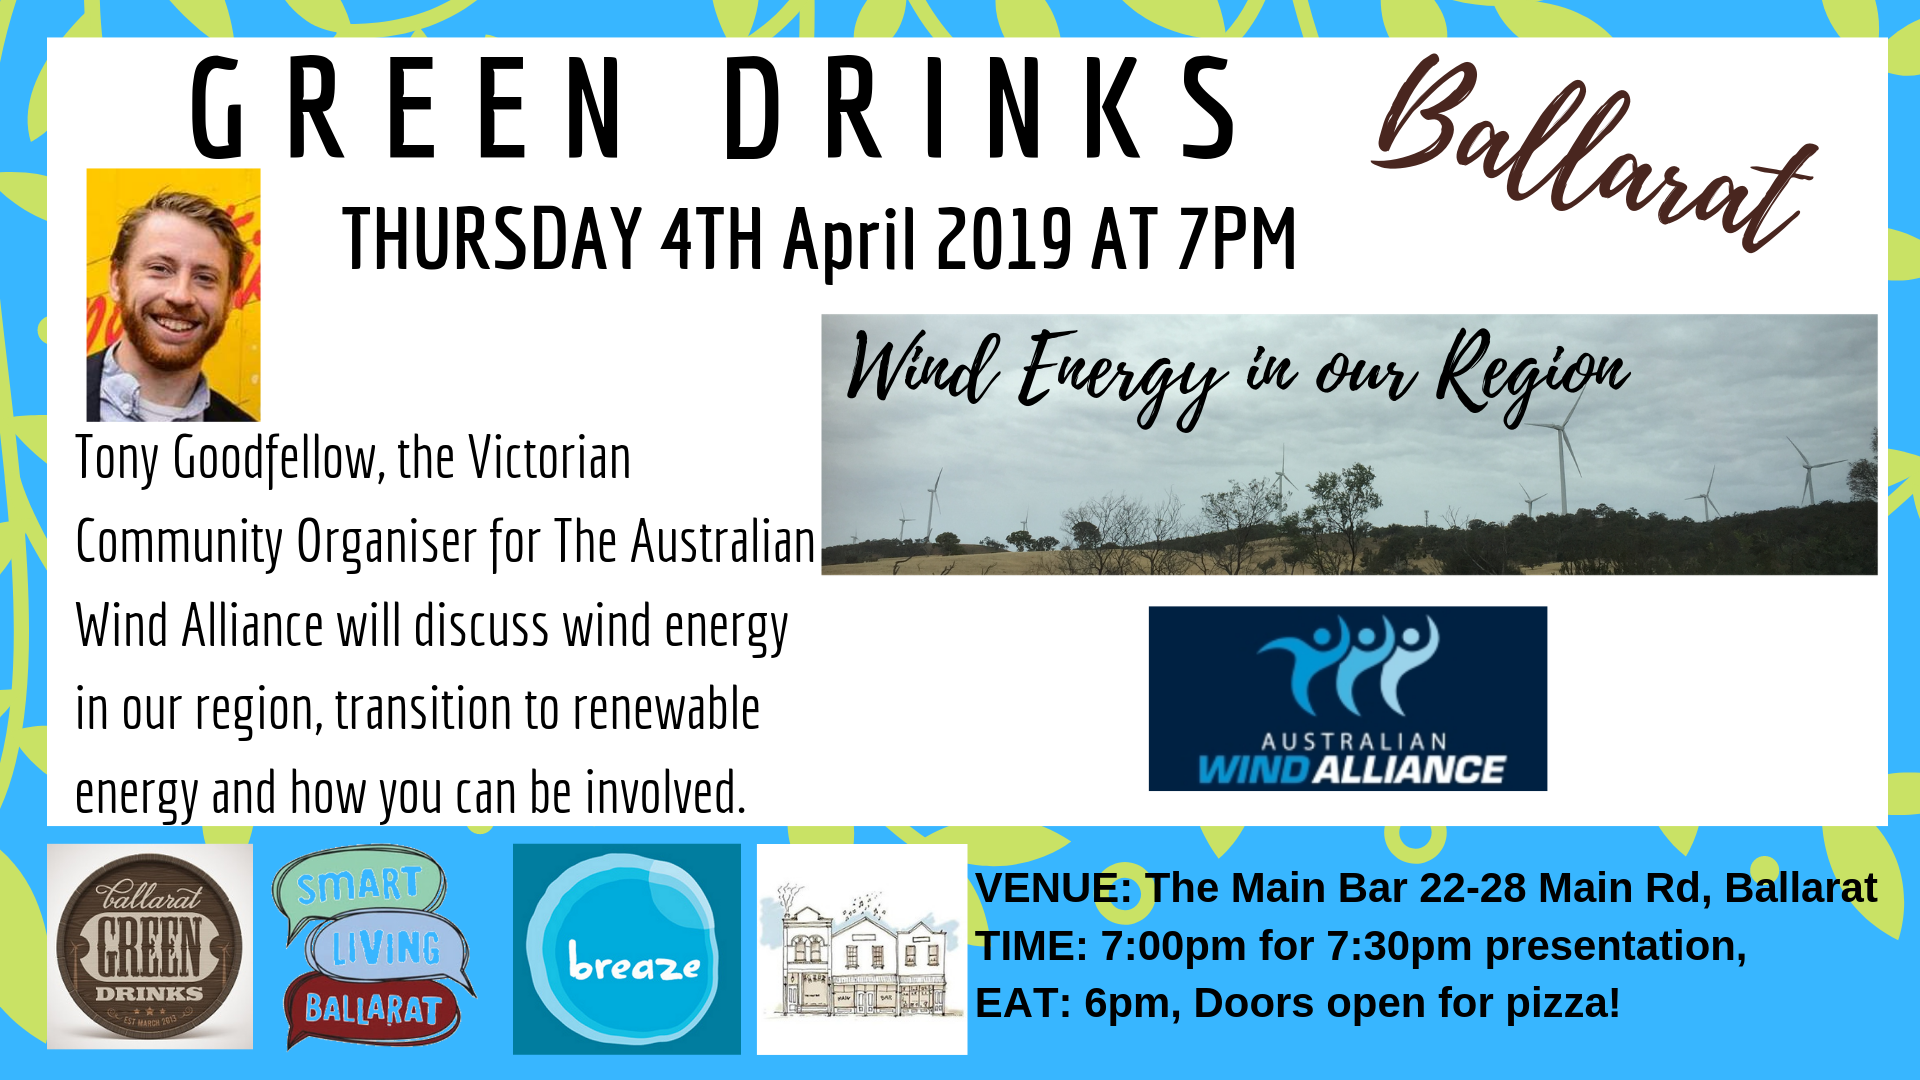 Ballarat Green Drinks